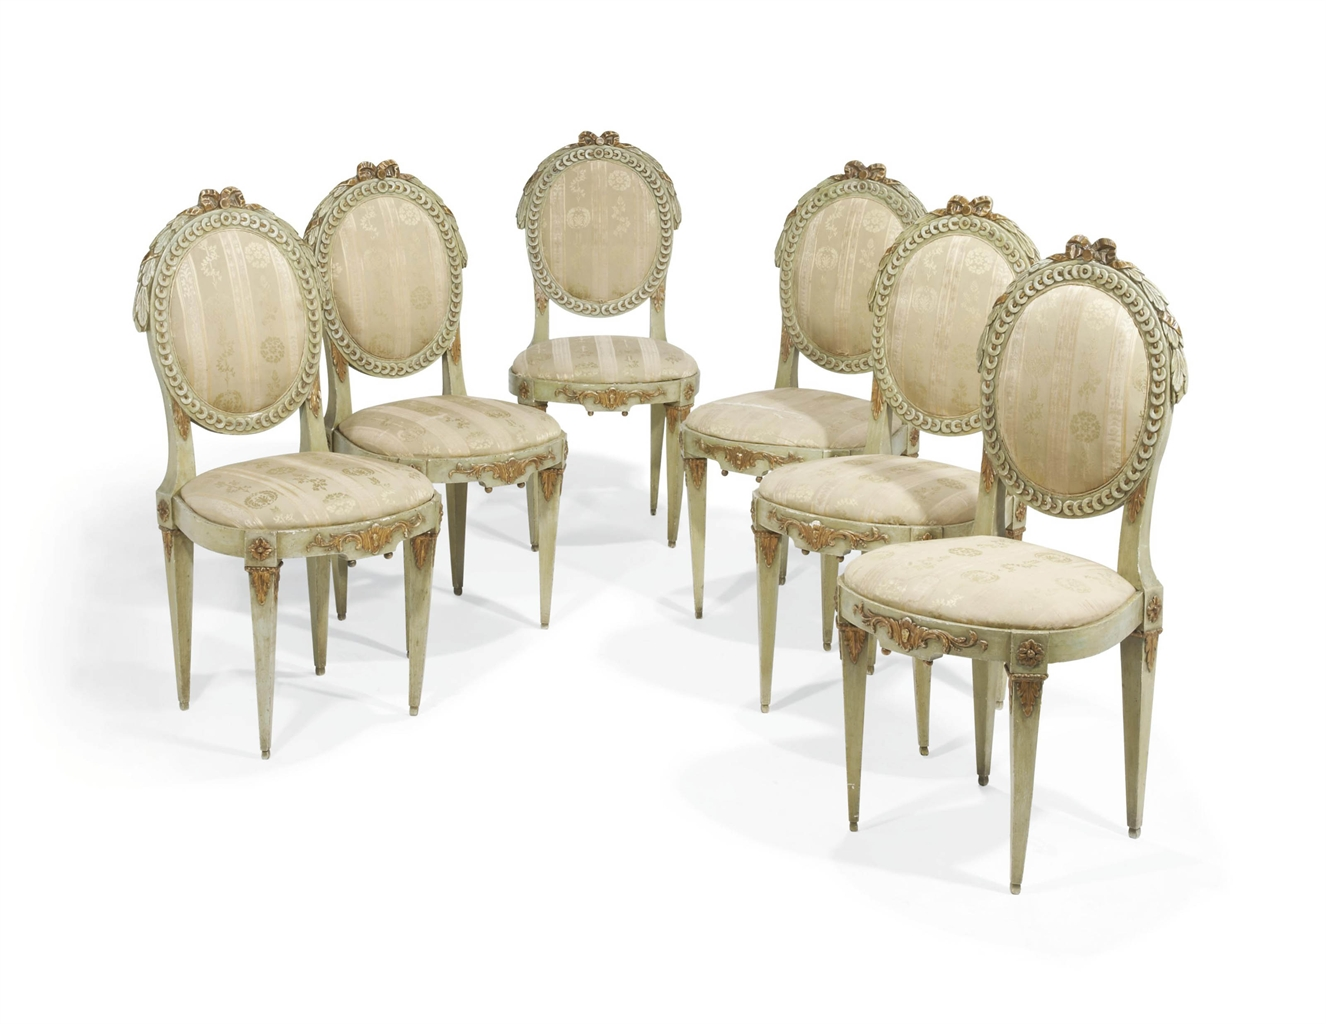 Six chaises d 39 epoque louis xvi fin du xviiieme siecle for Chaises louis xvi occasion